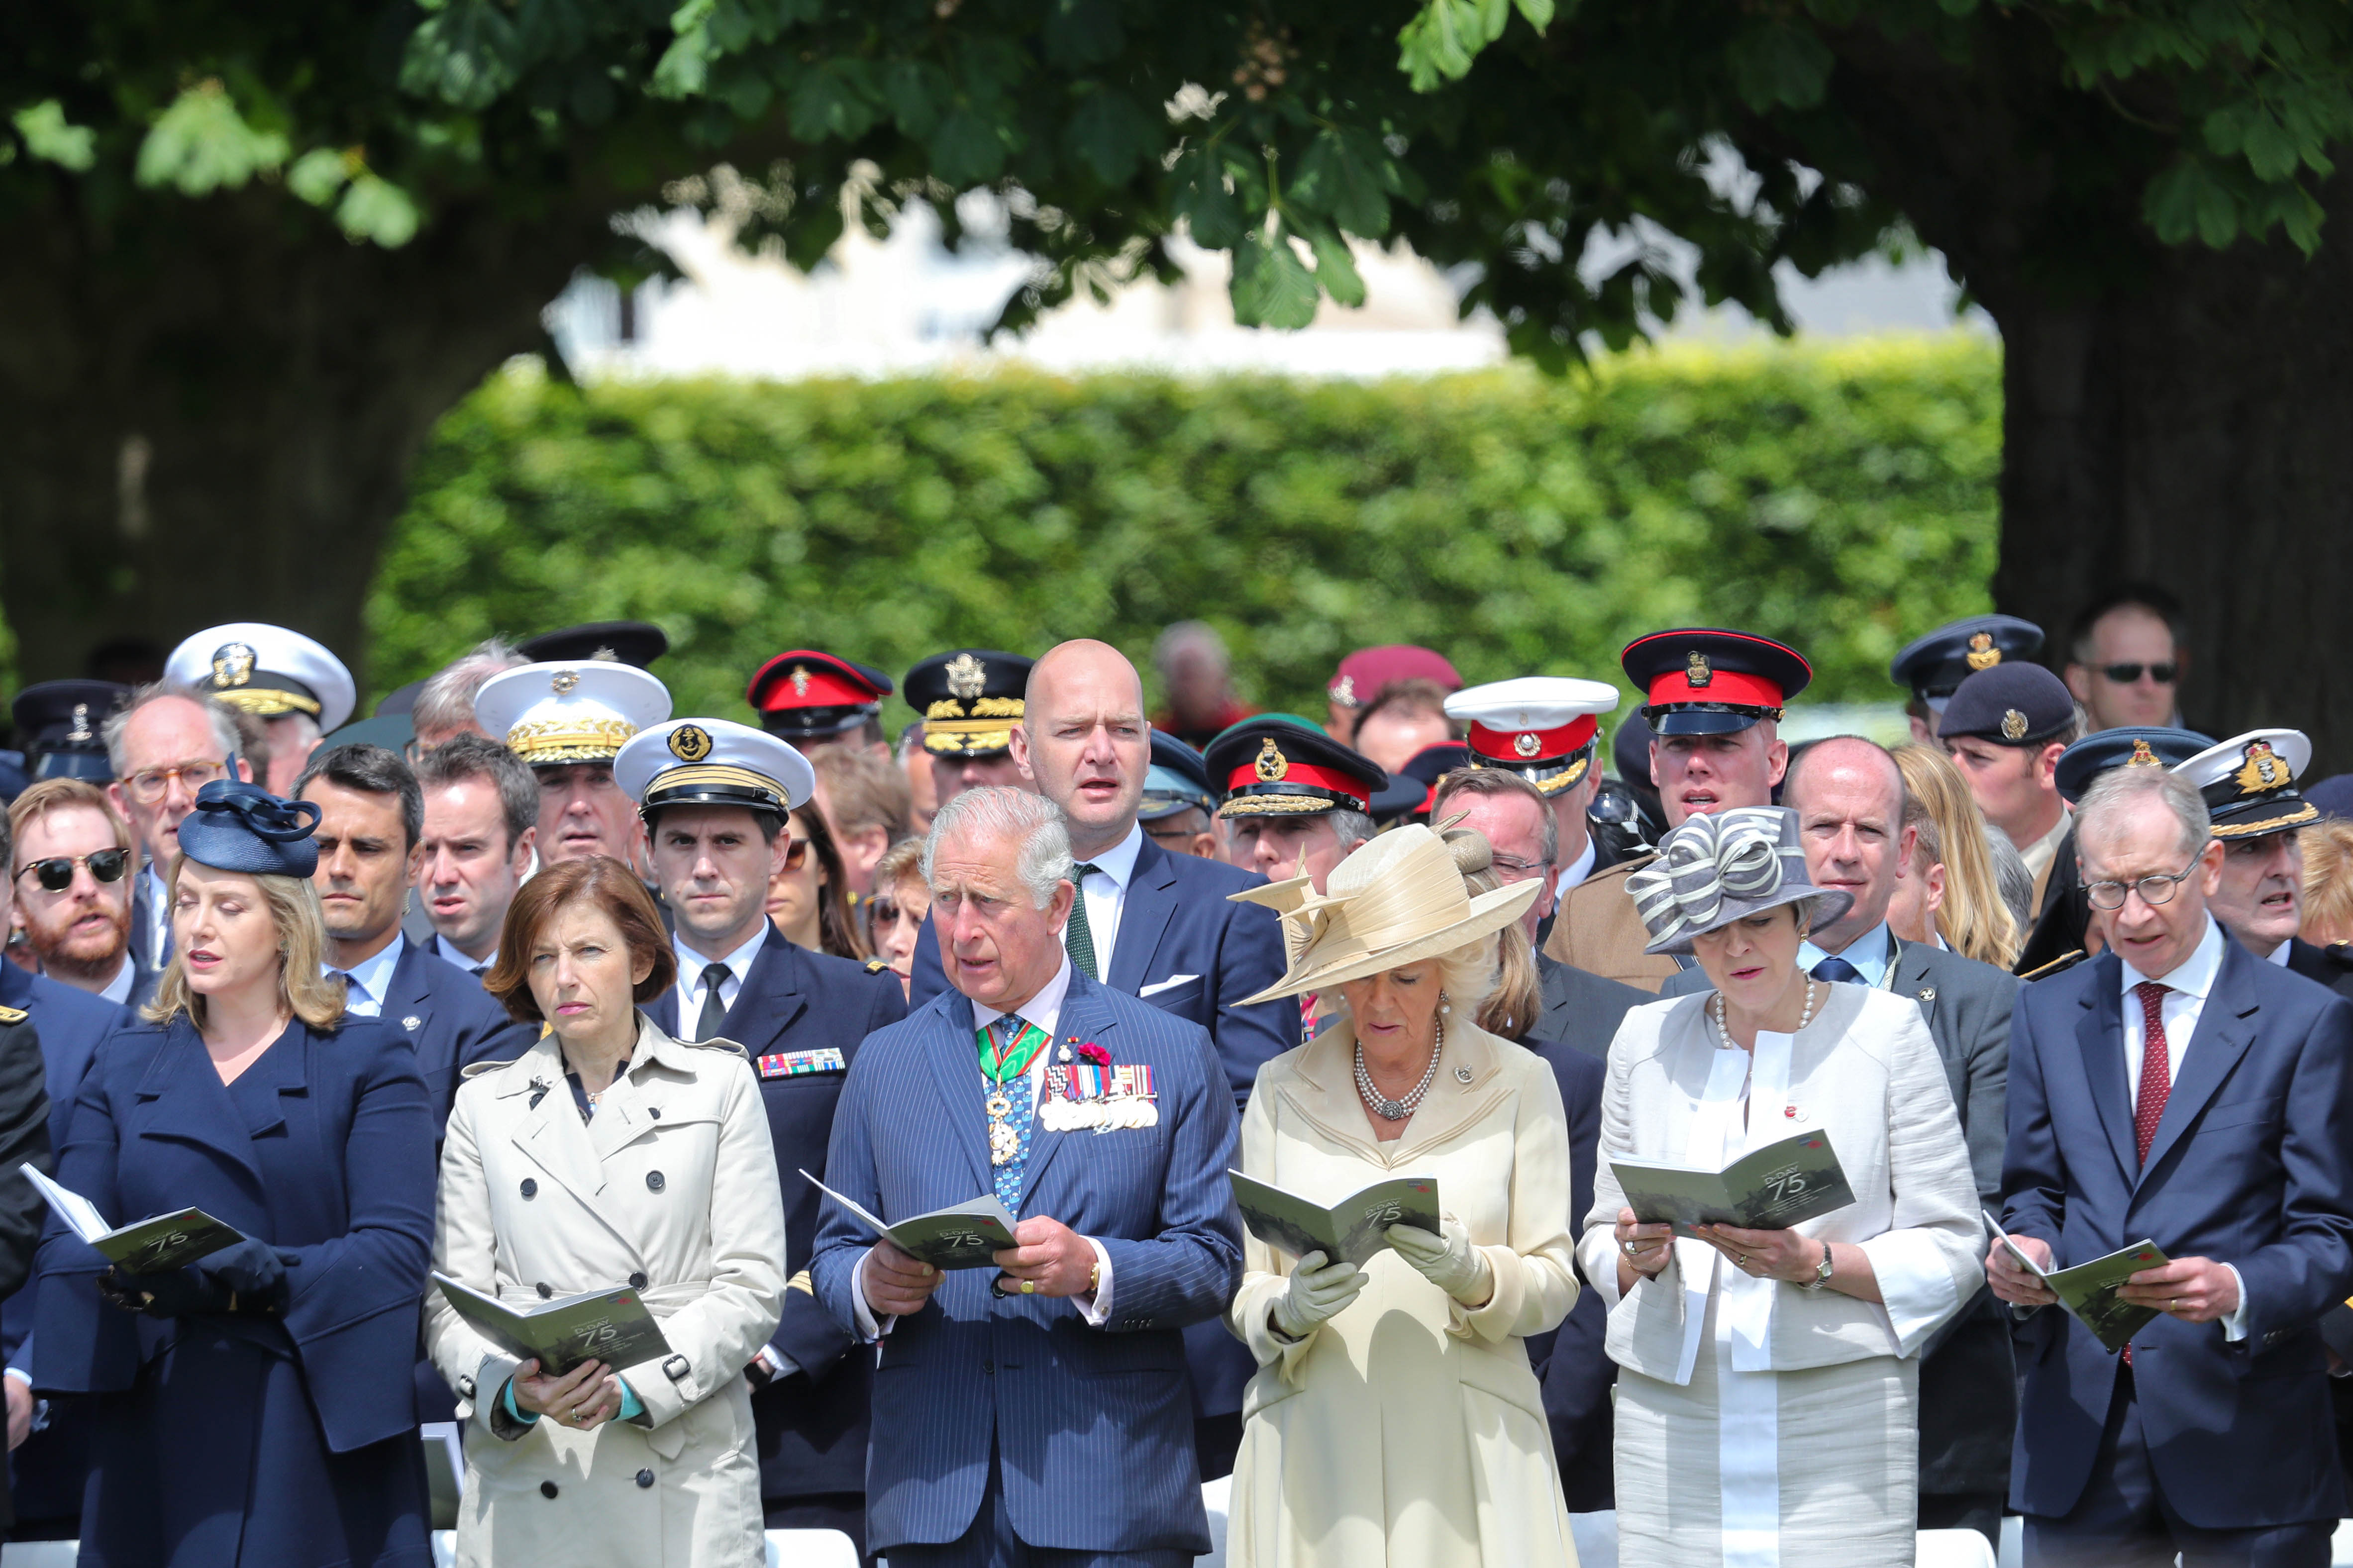 BAYEUX, FRANCE - JUNE 06: Secretary of State for Defence, Penny Mourdaunt, Prince Charles, Prince of Wales, Camilla, Duchess of Cornwall and Britain's Prime Minister Theresa May attend a memorial service at Bayeux War Cemetery on June 06, 2019 in Bayeux, France. Veterans, families, visitors, political leaders and military personnel are gathering in Normandy to commemorate D-Day, which heralded the Allied advance towards Germany and victory about 11 months later. (Photo by Chris Jackson/Getty Images)